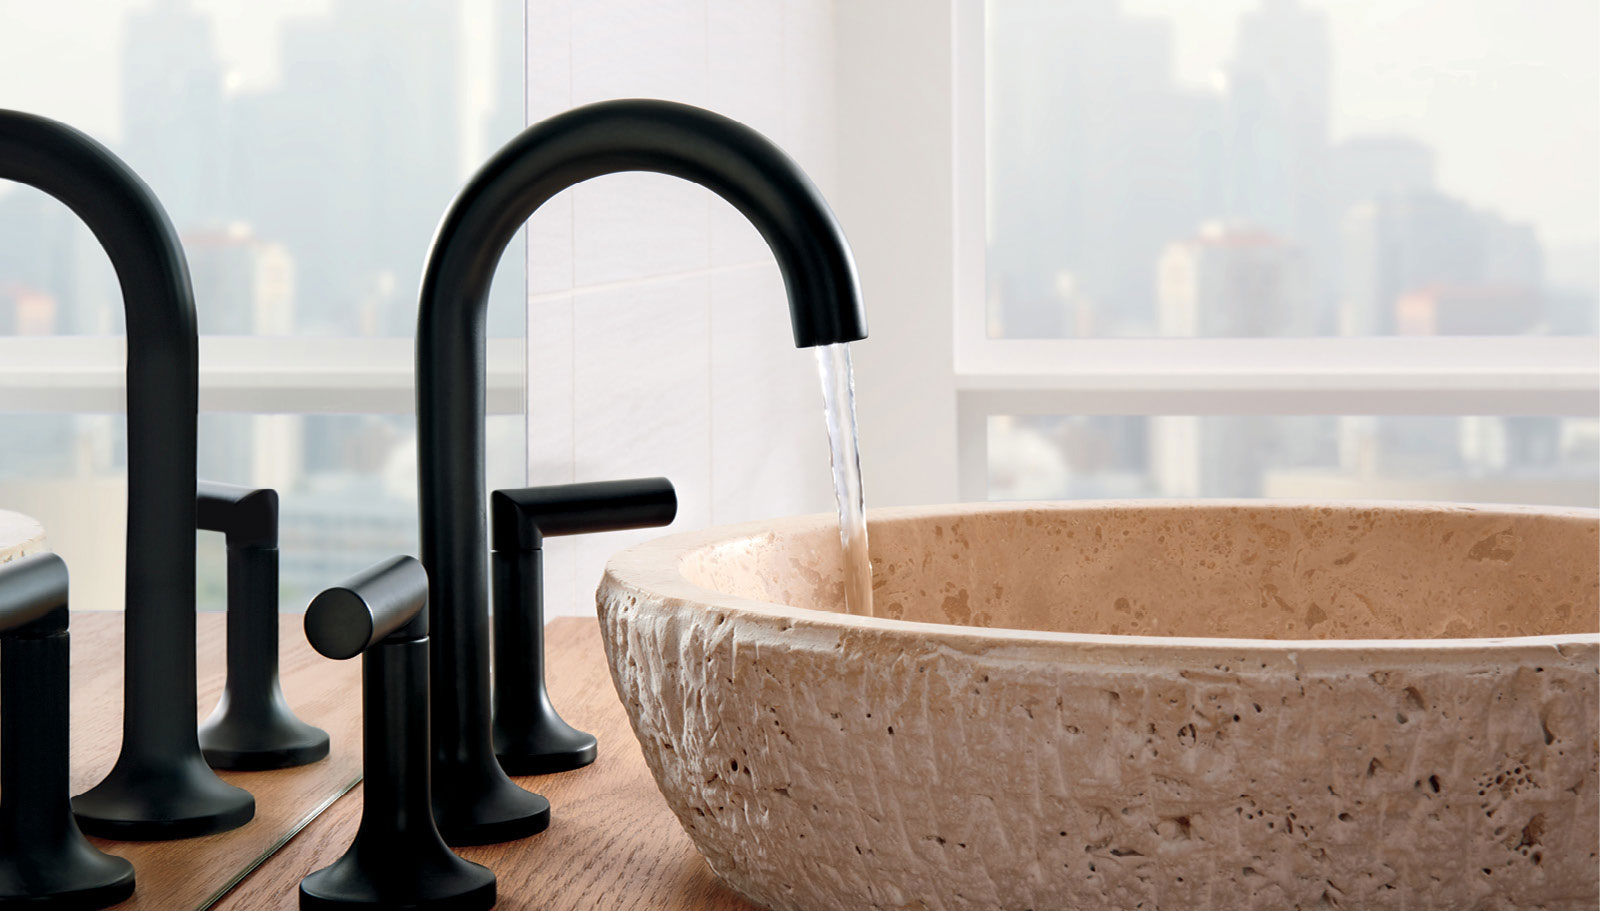 Black Faucets For Bathroom. Black Bathroom Faucets Black Faucets For Bathroom